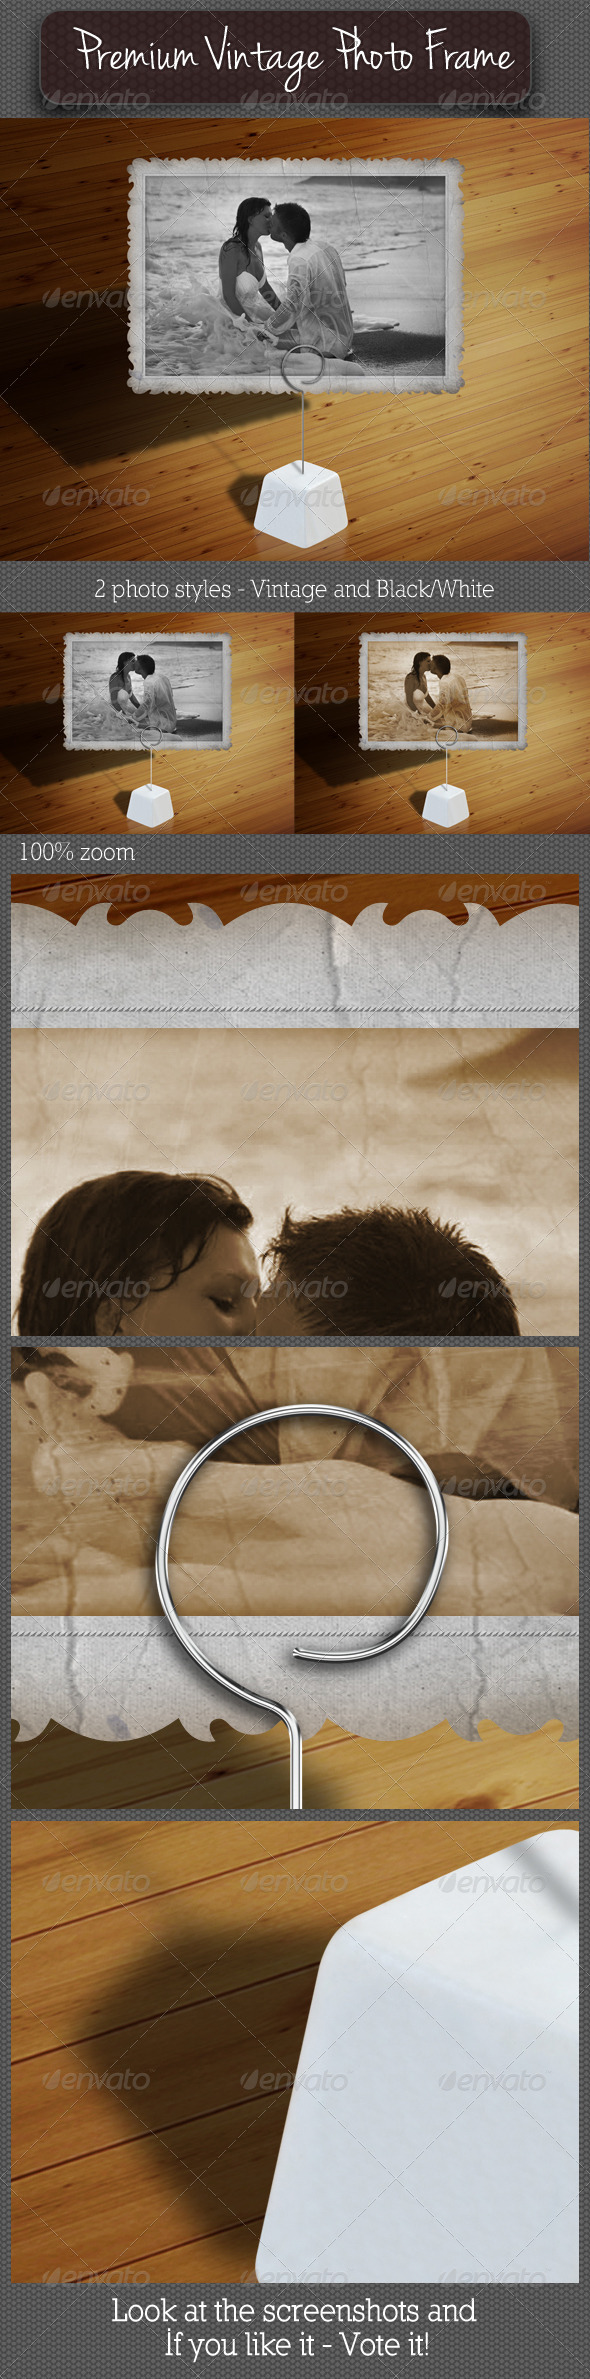 Premium Vintage Photo Frame 02 - Artistic Photo Templates